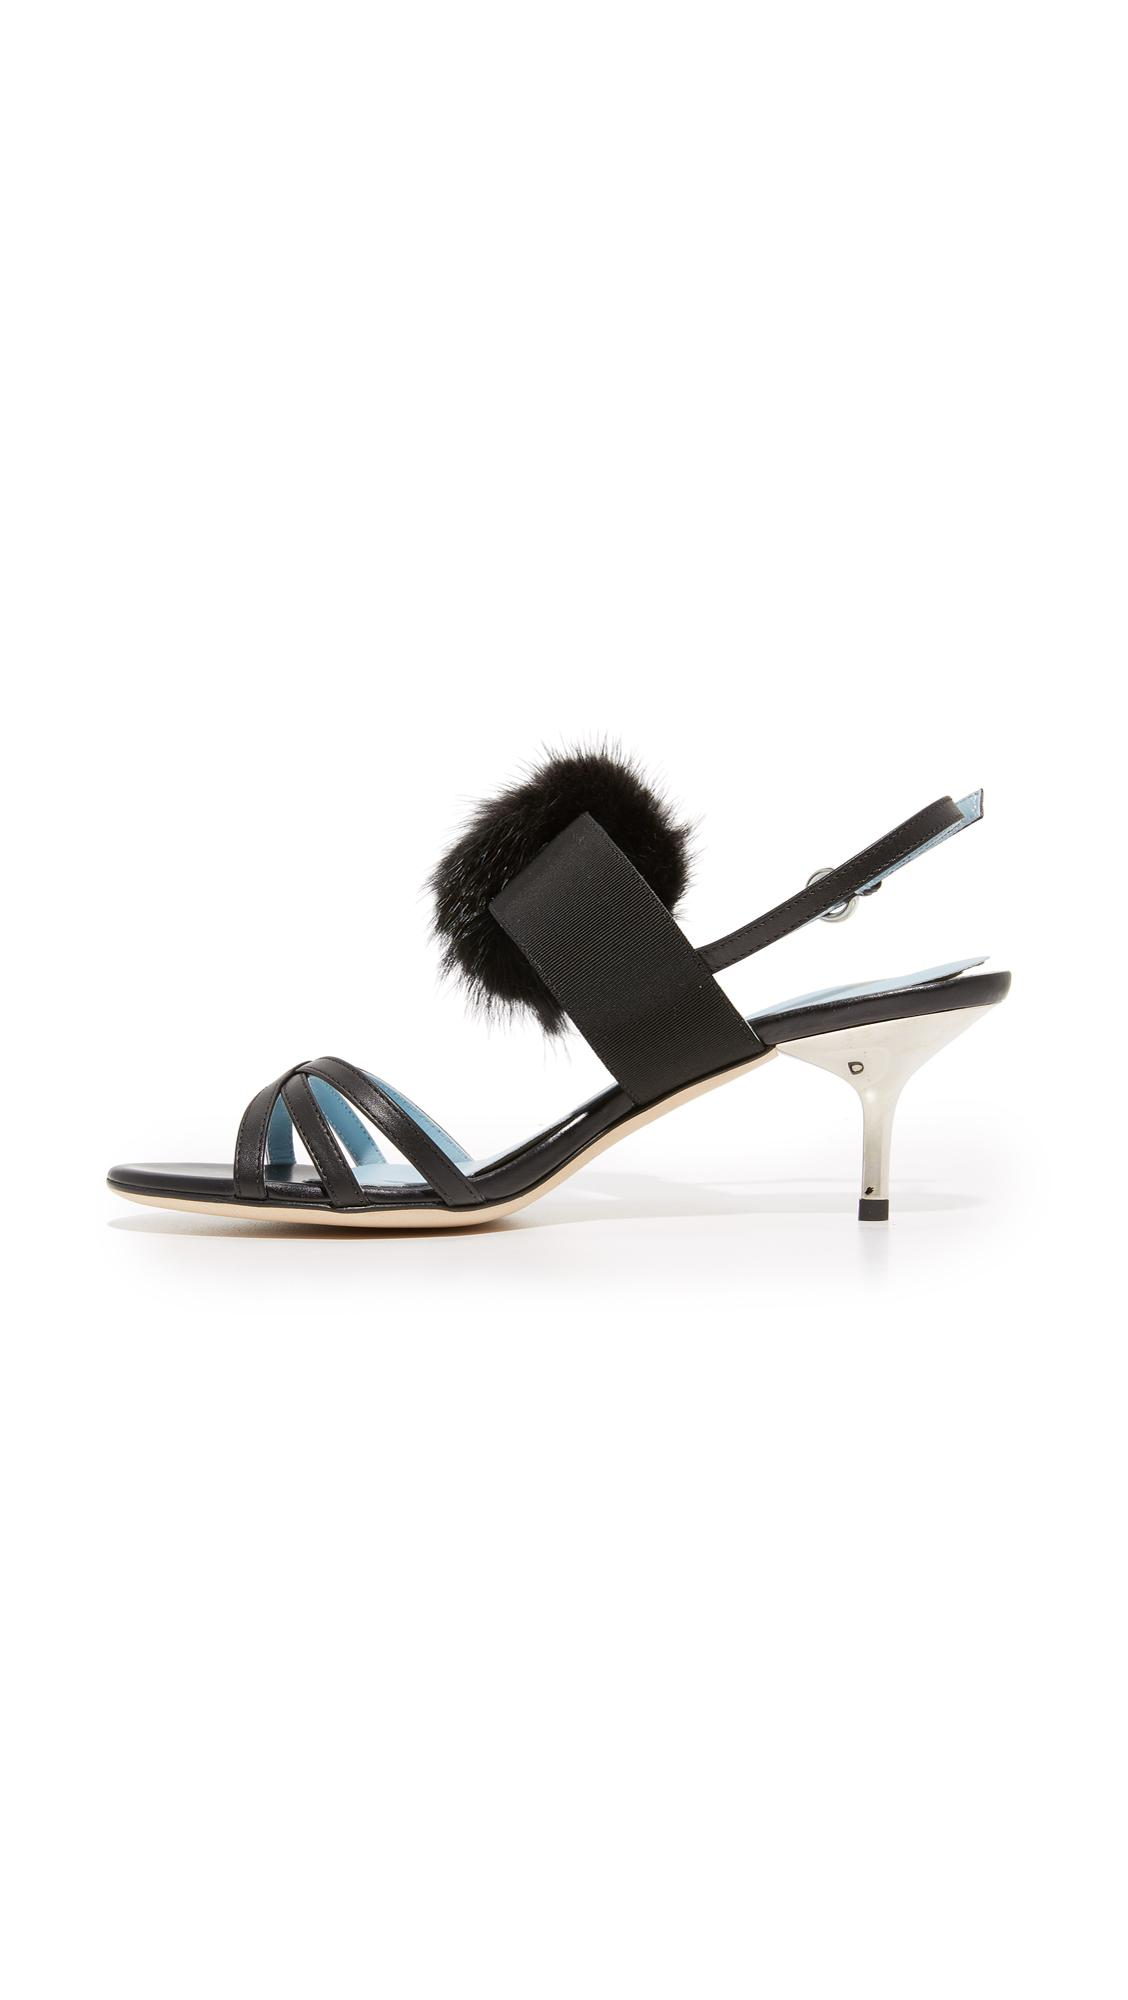 7315bea6ad30c Lyst - Frances valentine Lisette Fur Sandals in Black